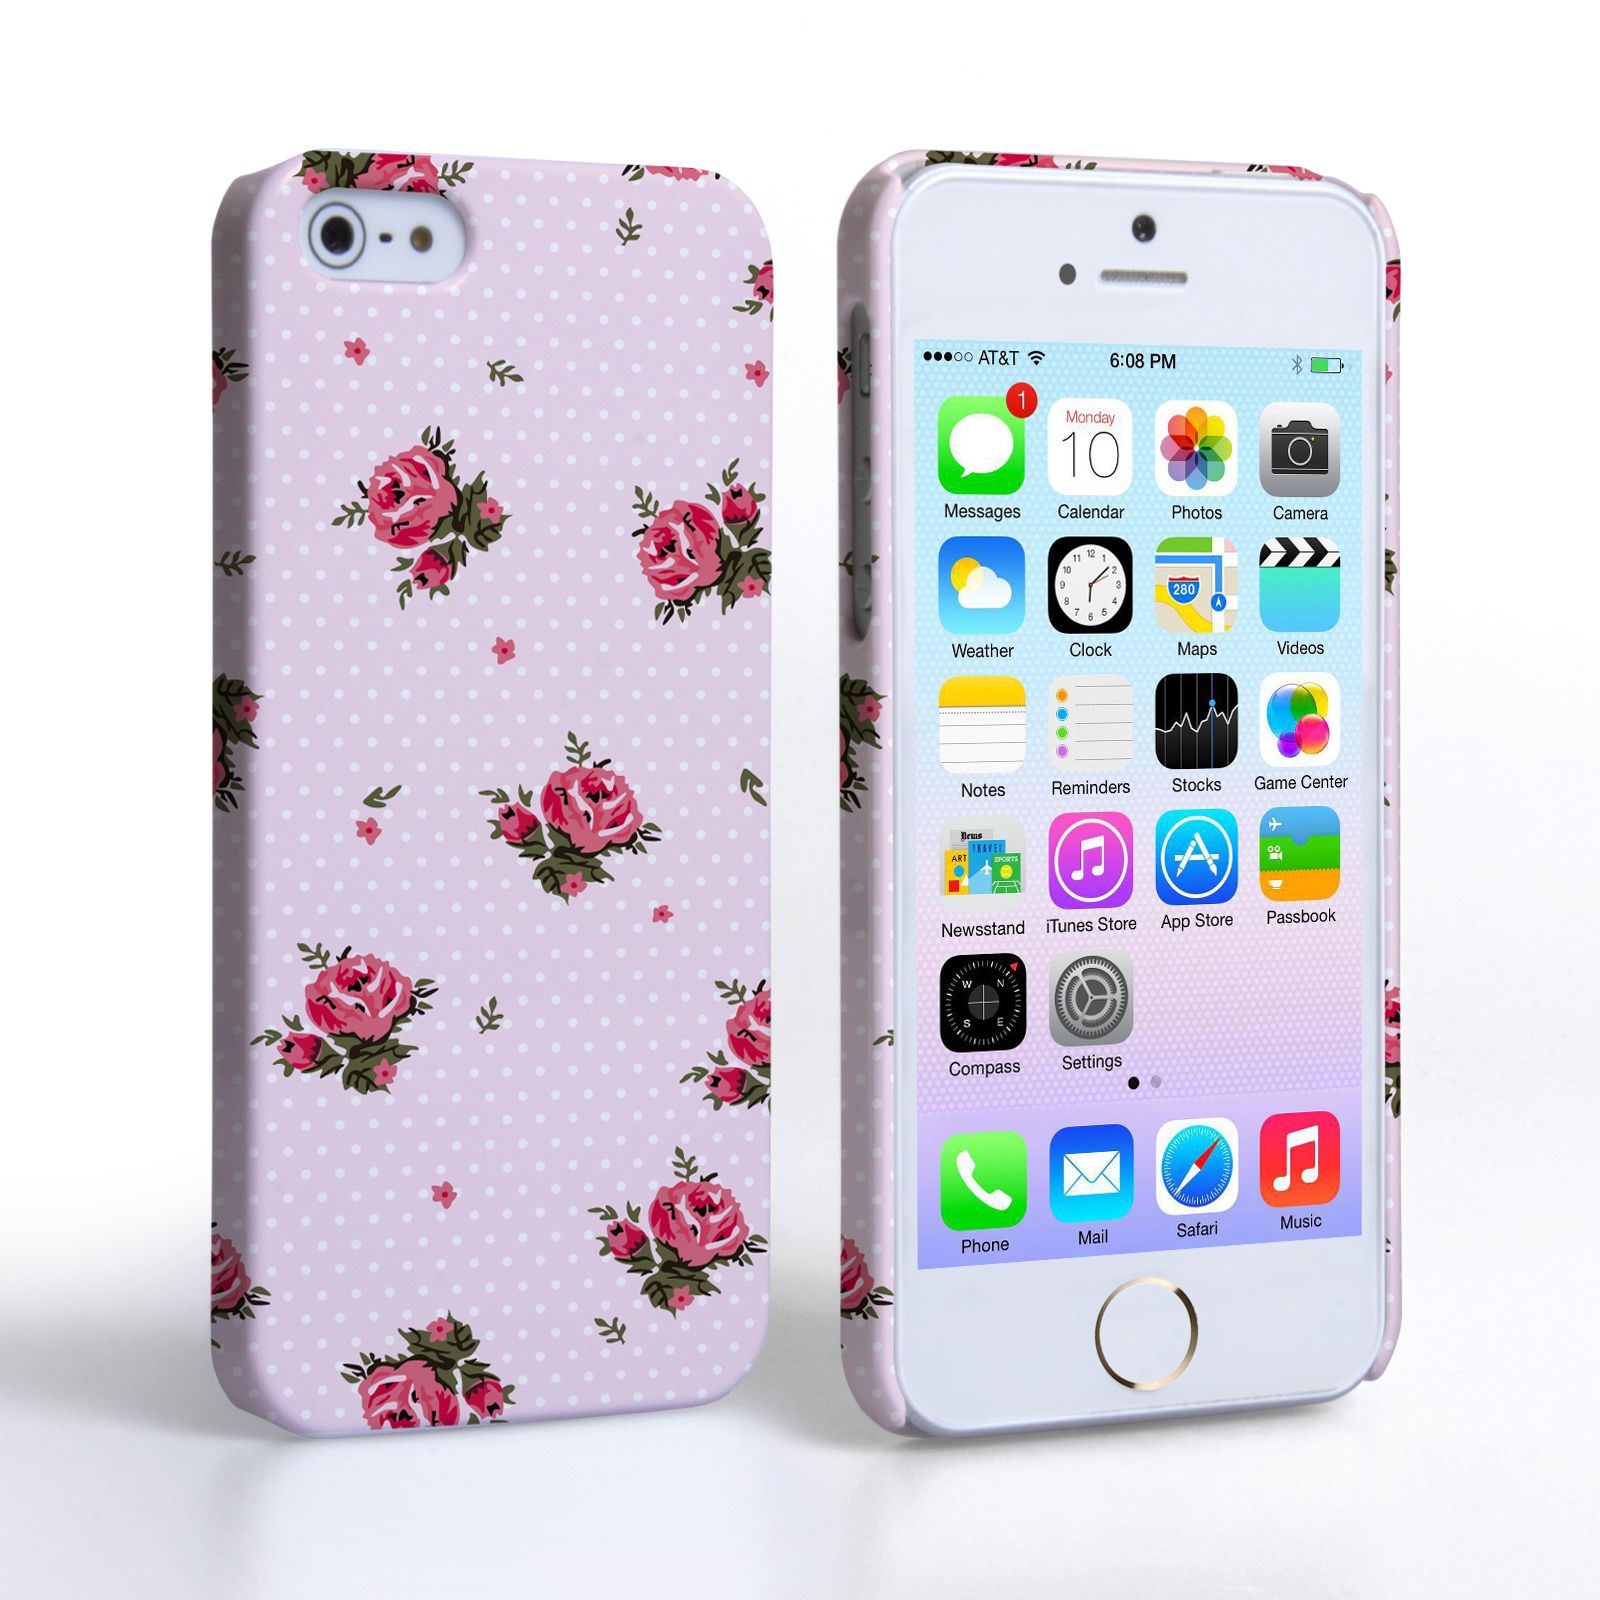 caseflex iphone 5 5s vintage roses polka dot wallpaper hard case pink. Black Bedroom Furniture Sets. Home Design Ideas